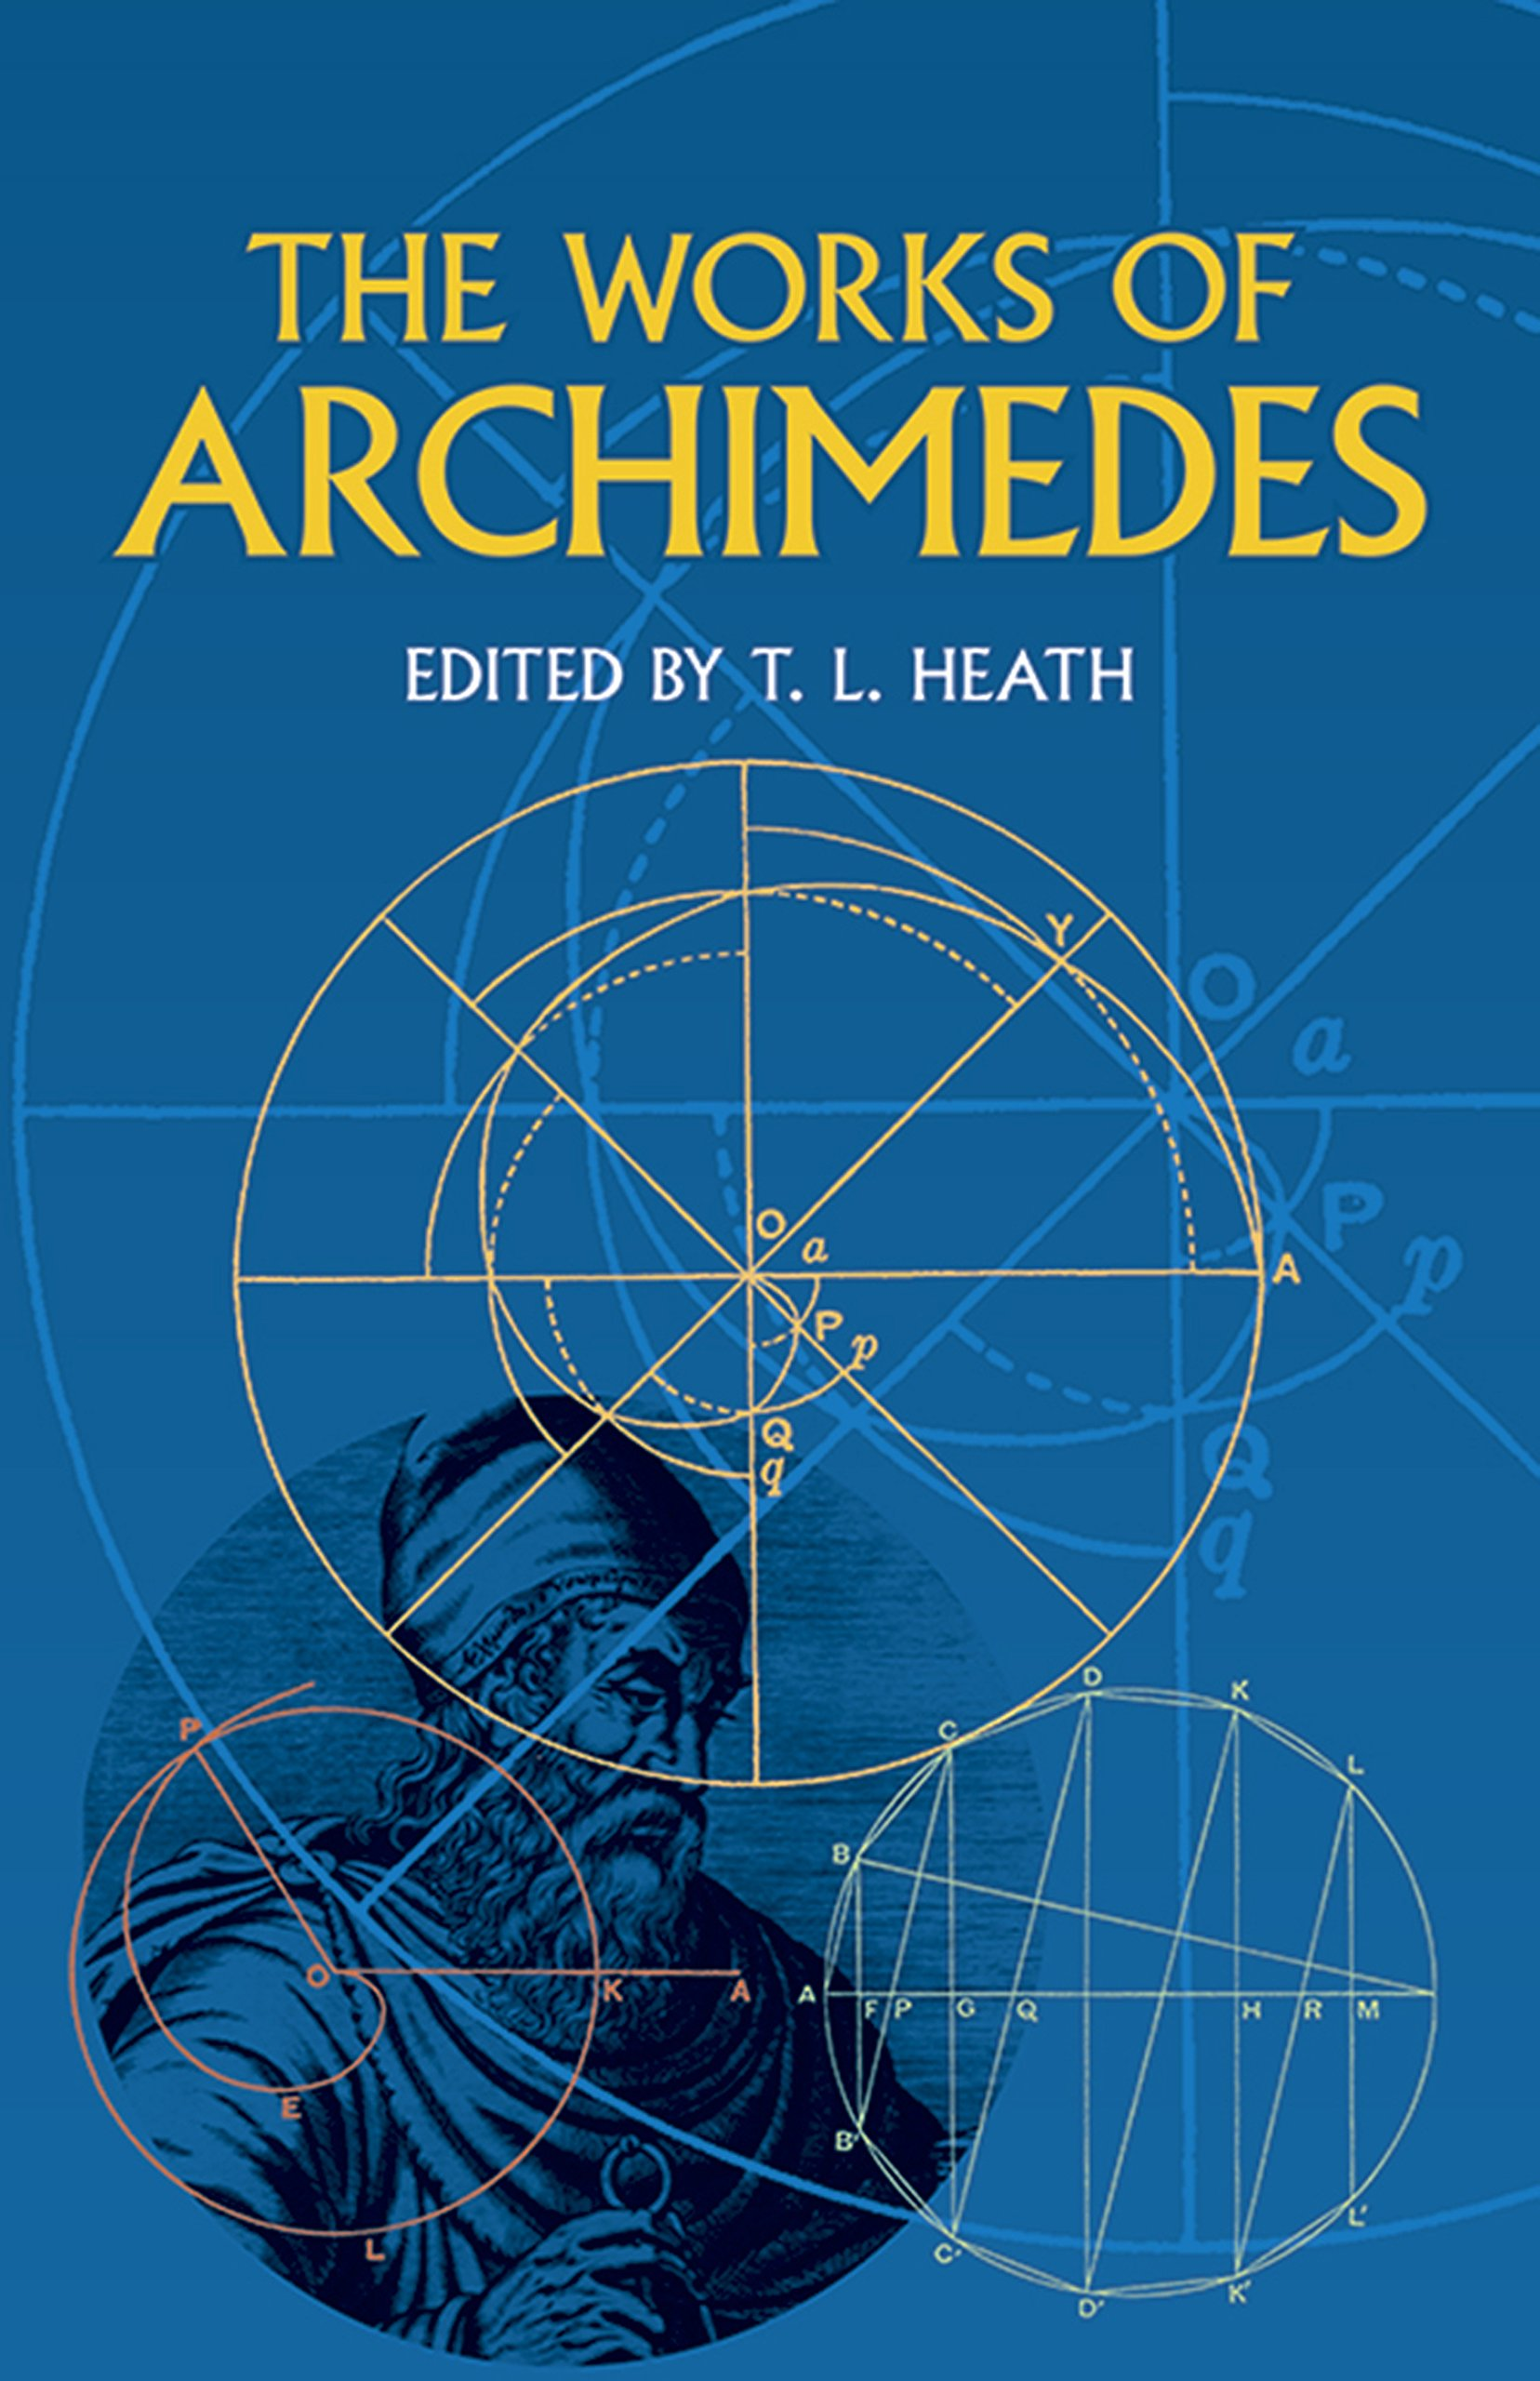 The Works of Archimedes (Dover Books on Mathematics): Archimedes ...